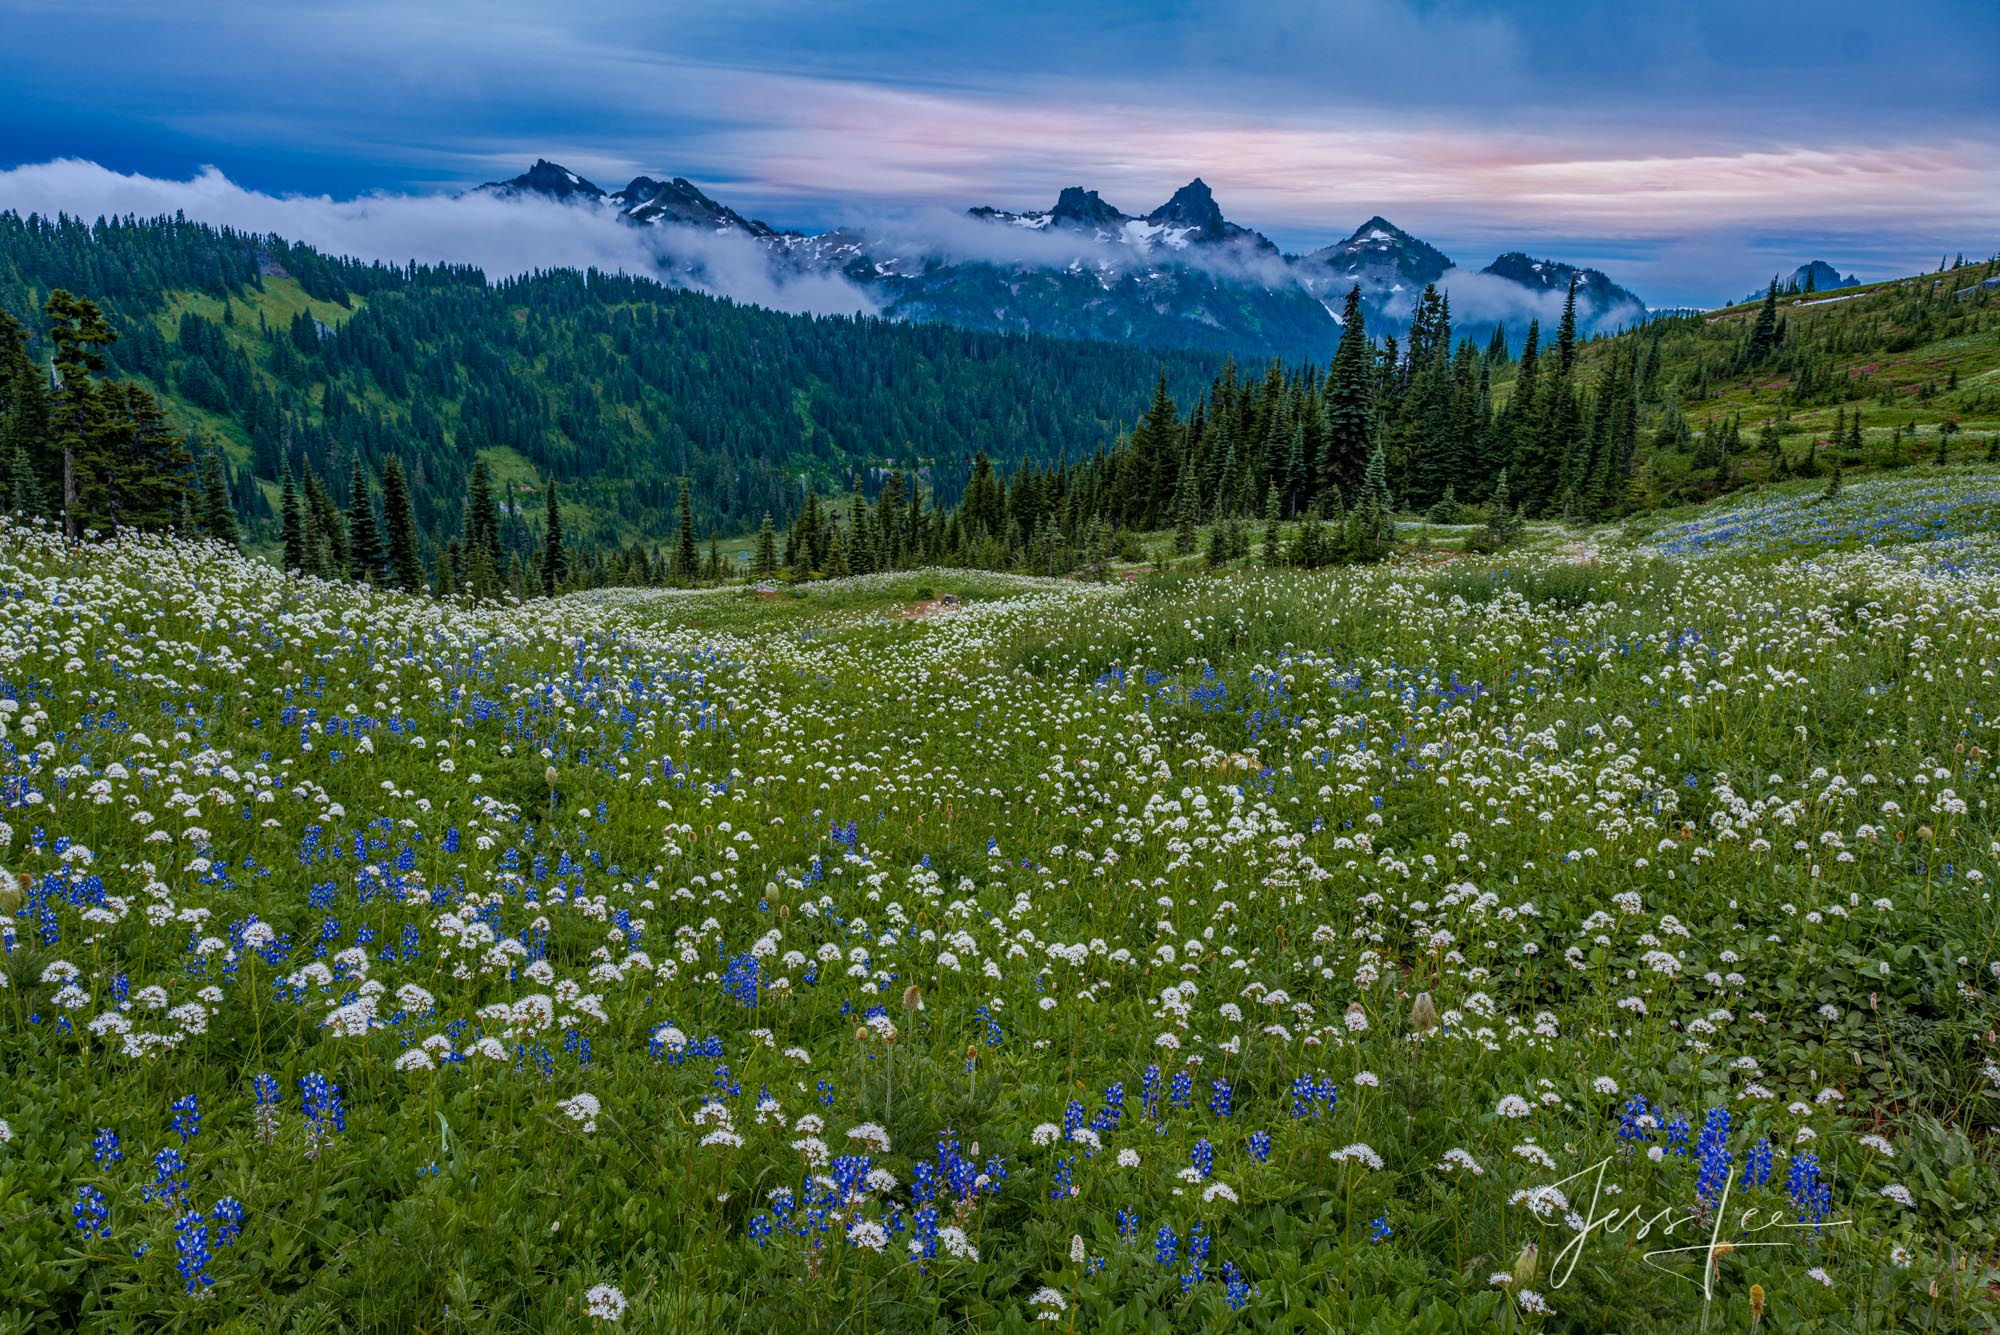 Beautify  your space  with Jess Lee's limited edition photography print, Blue Hour, from his Mount Rainier Gallery . Order yours...